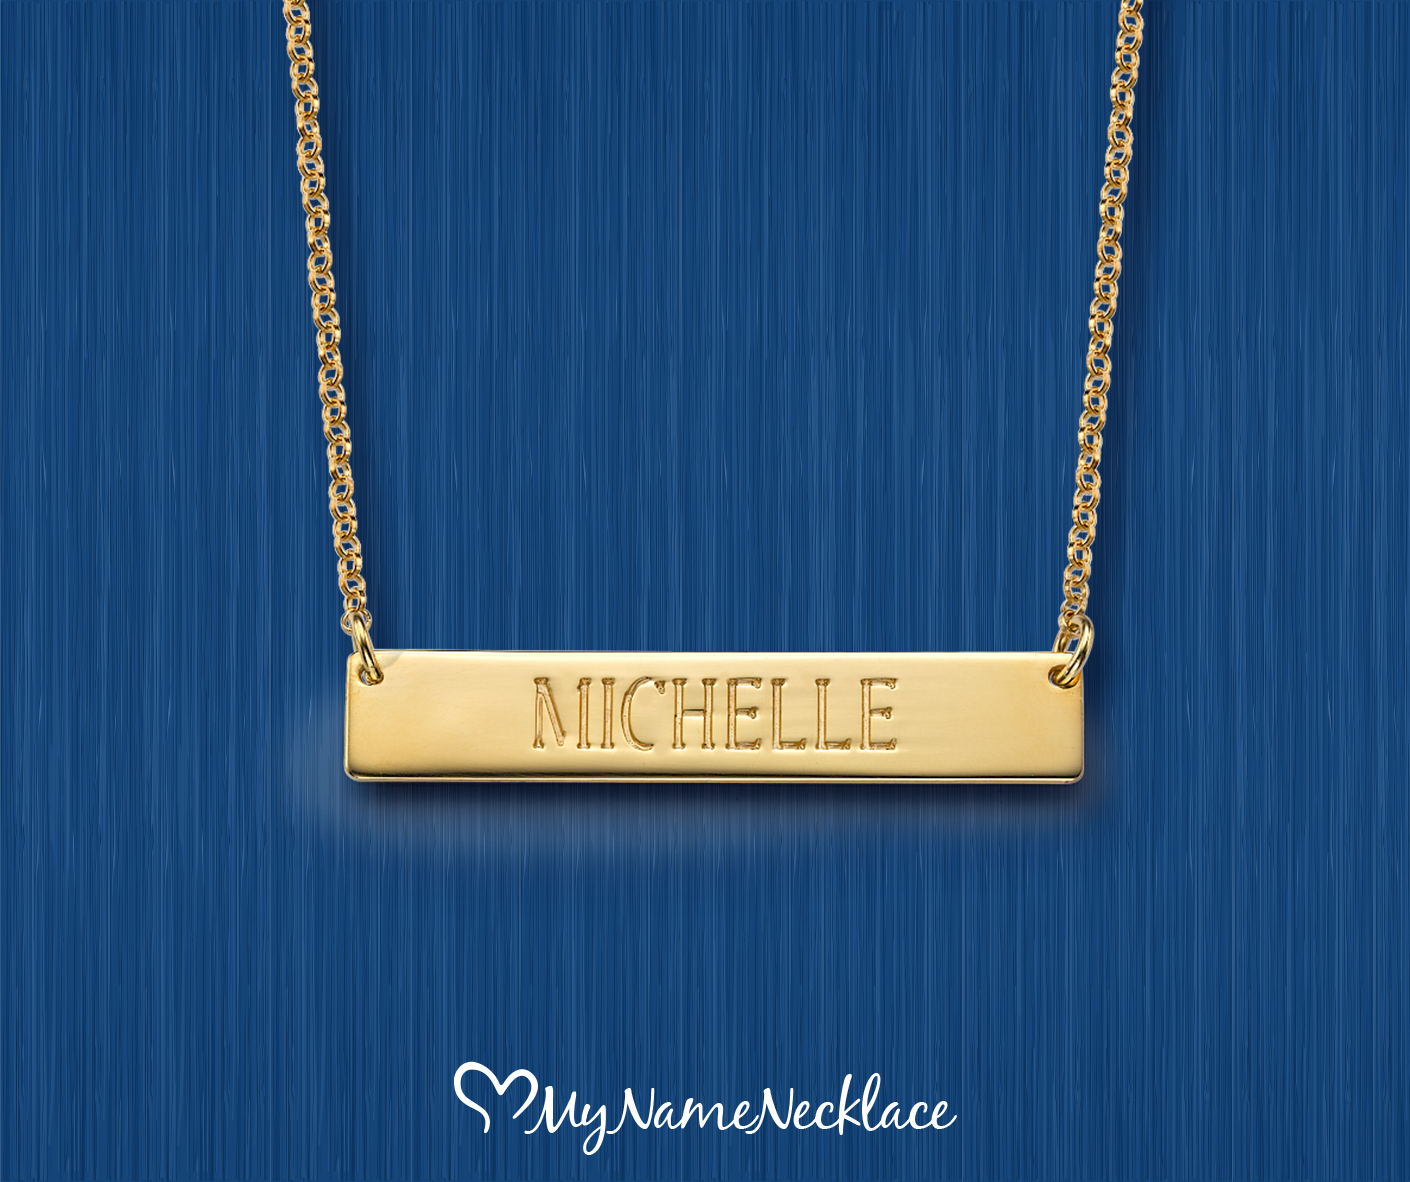 Bar necklaces are so popular right now and we want to ensure you get to enjoy this popular fashion trend with the Engraved Bar Necklace in Gold Plating.